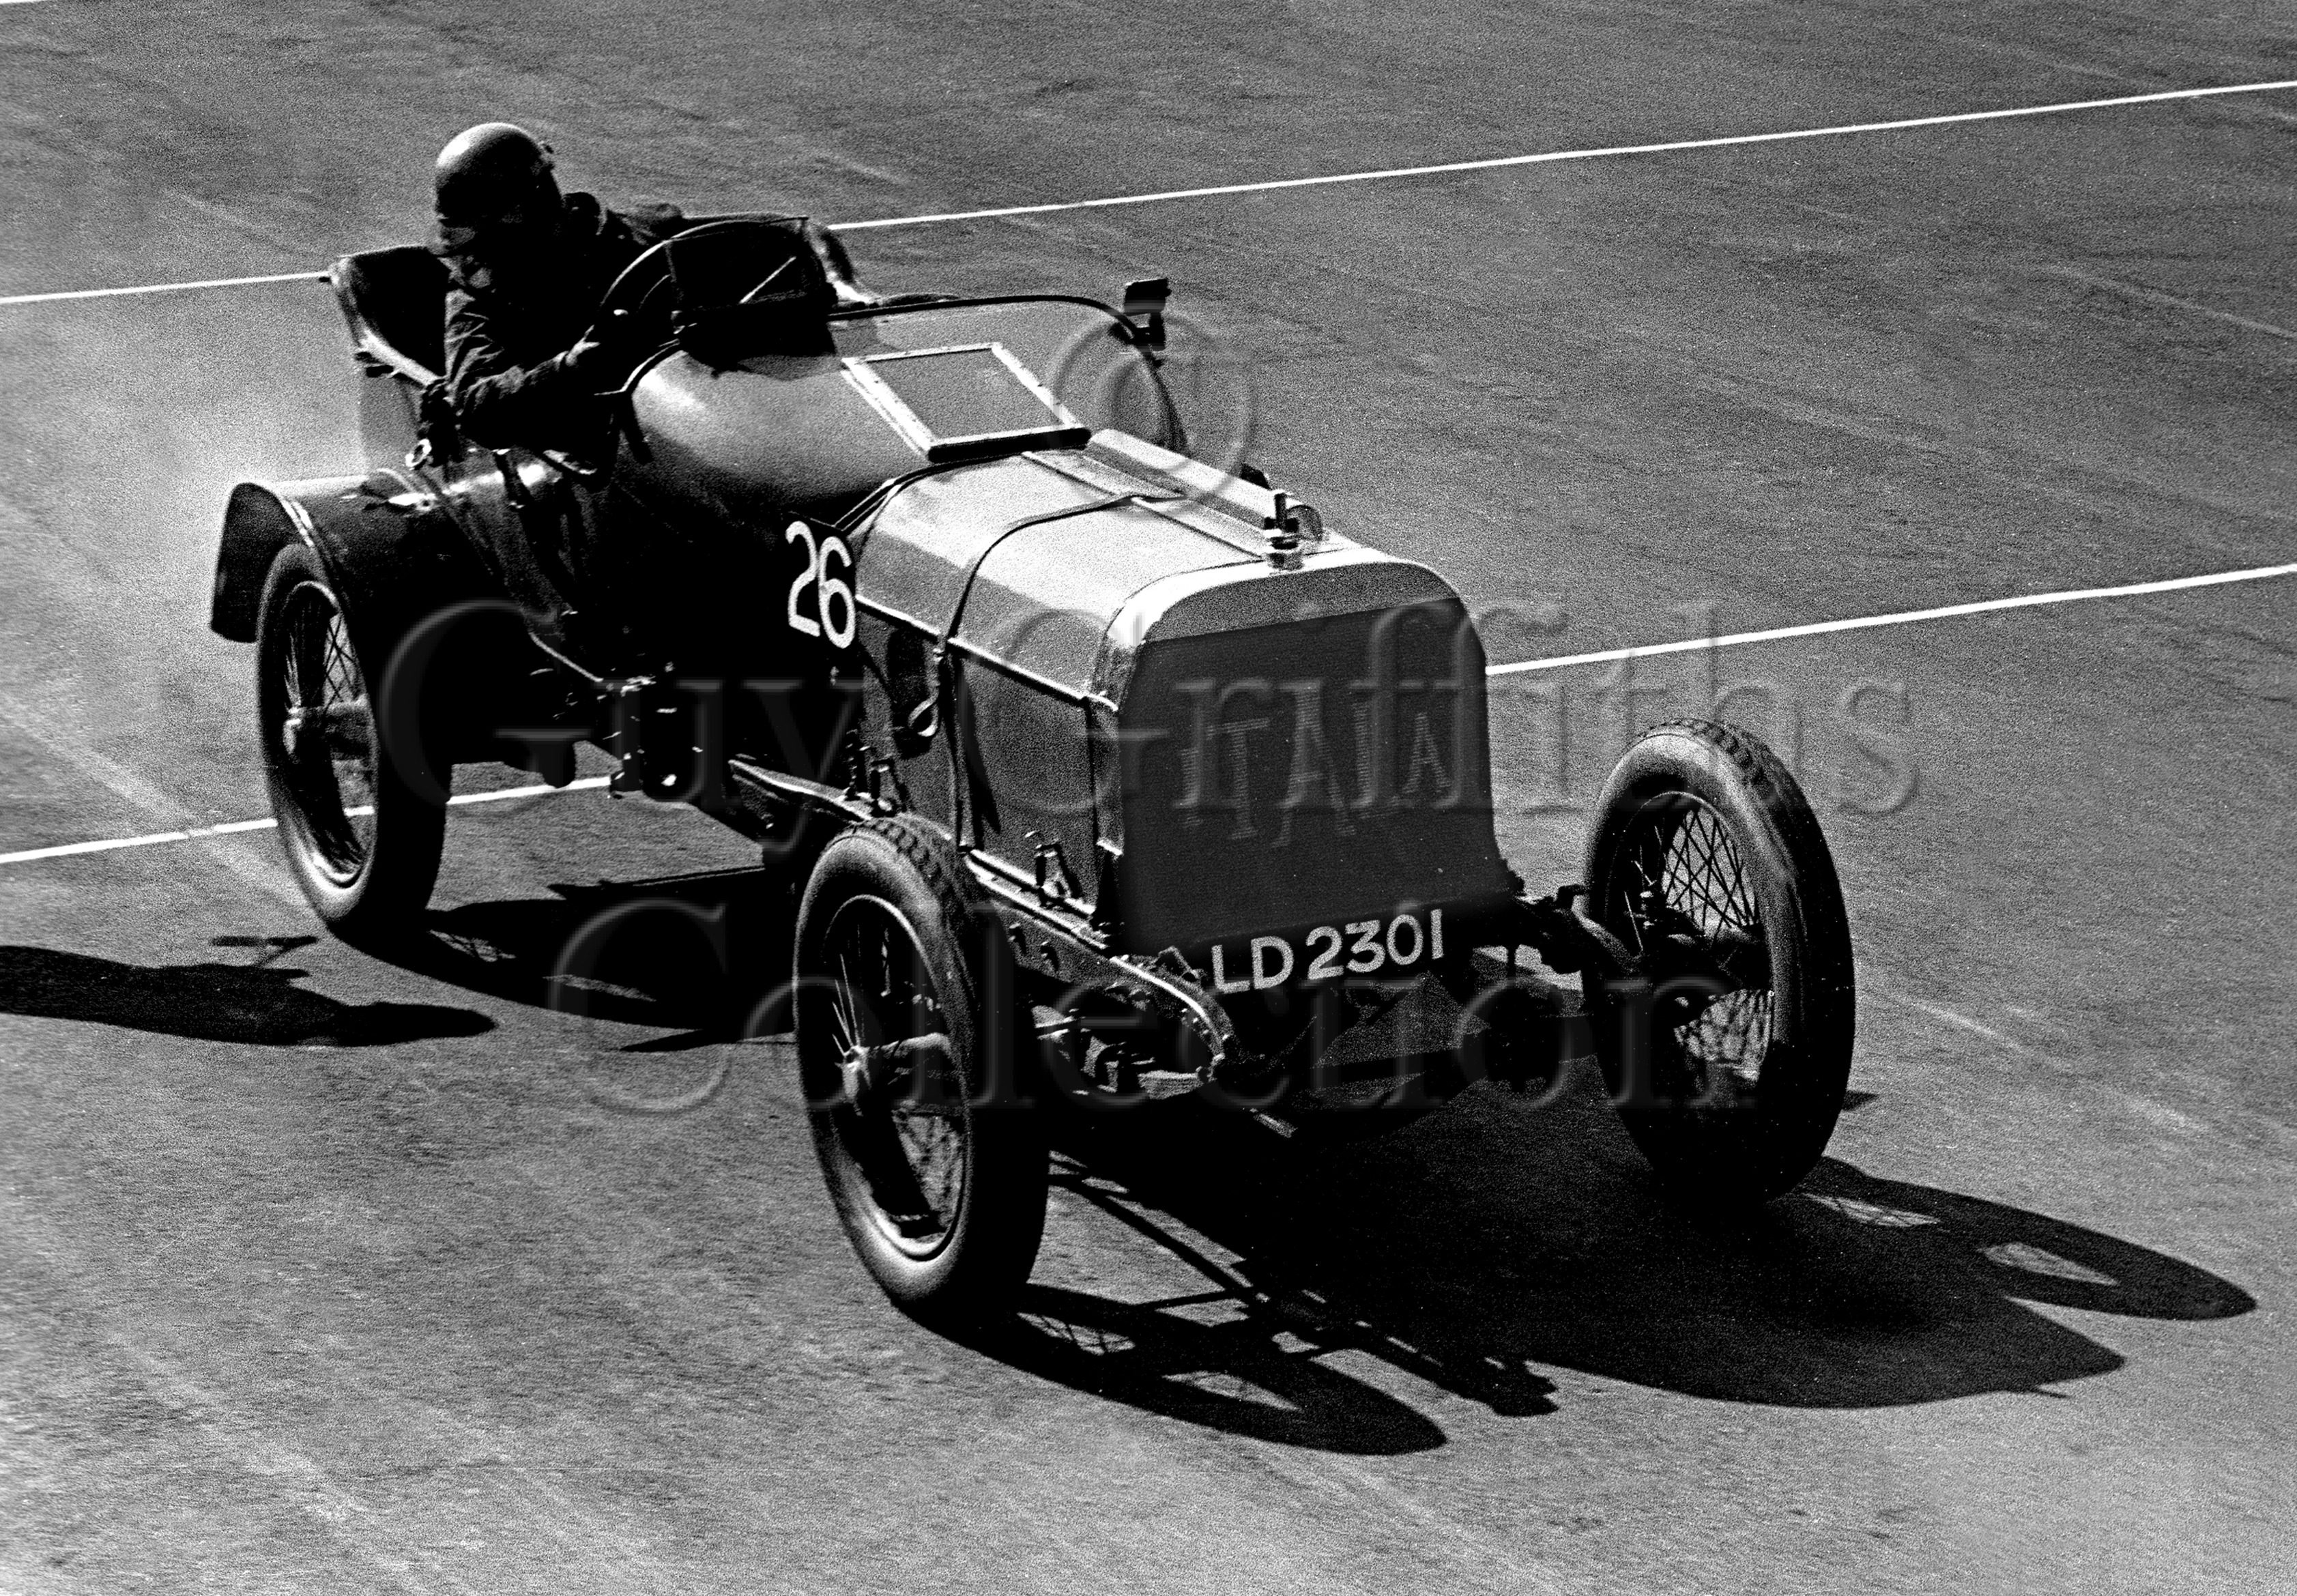 68-421–G-A-Ewen–Itala–Silverstone–02-05-1953.jpg - The Guy Griffiths Collection